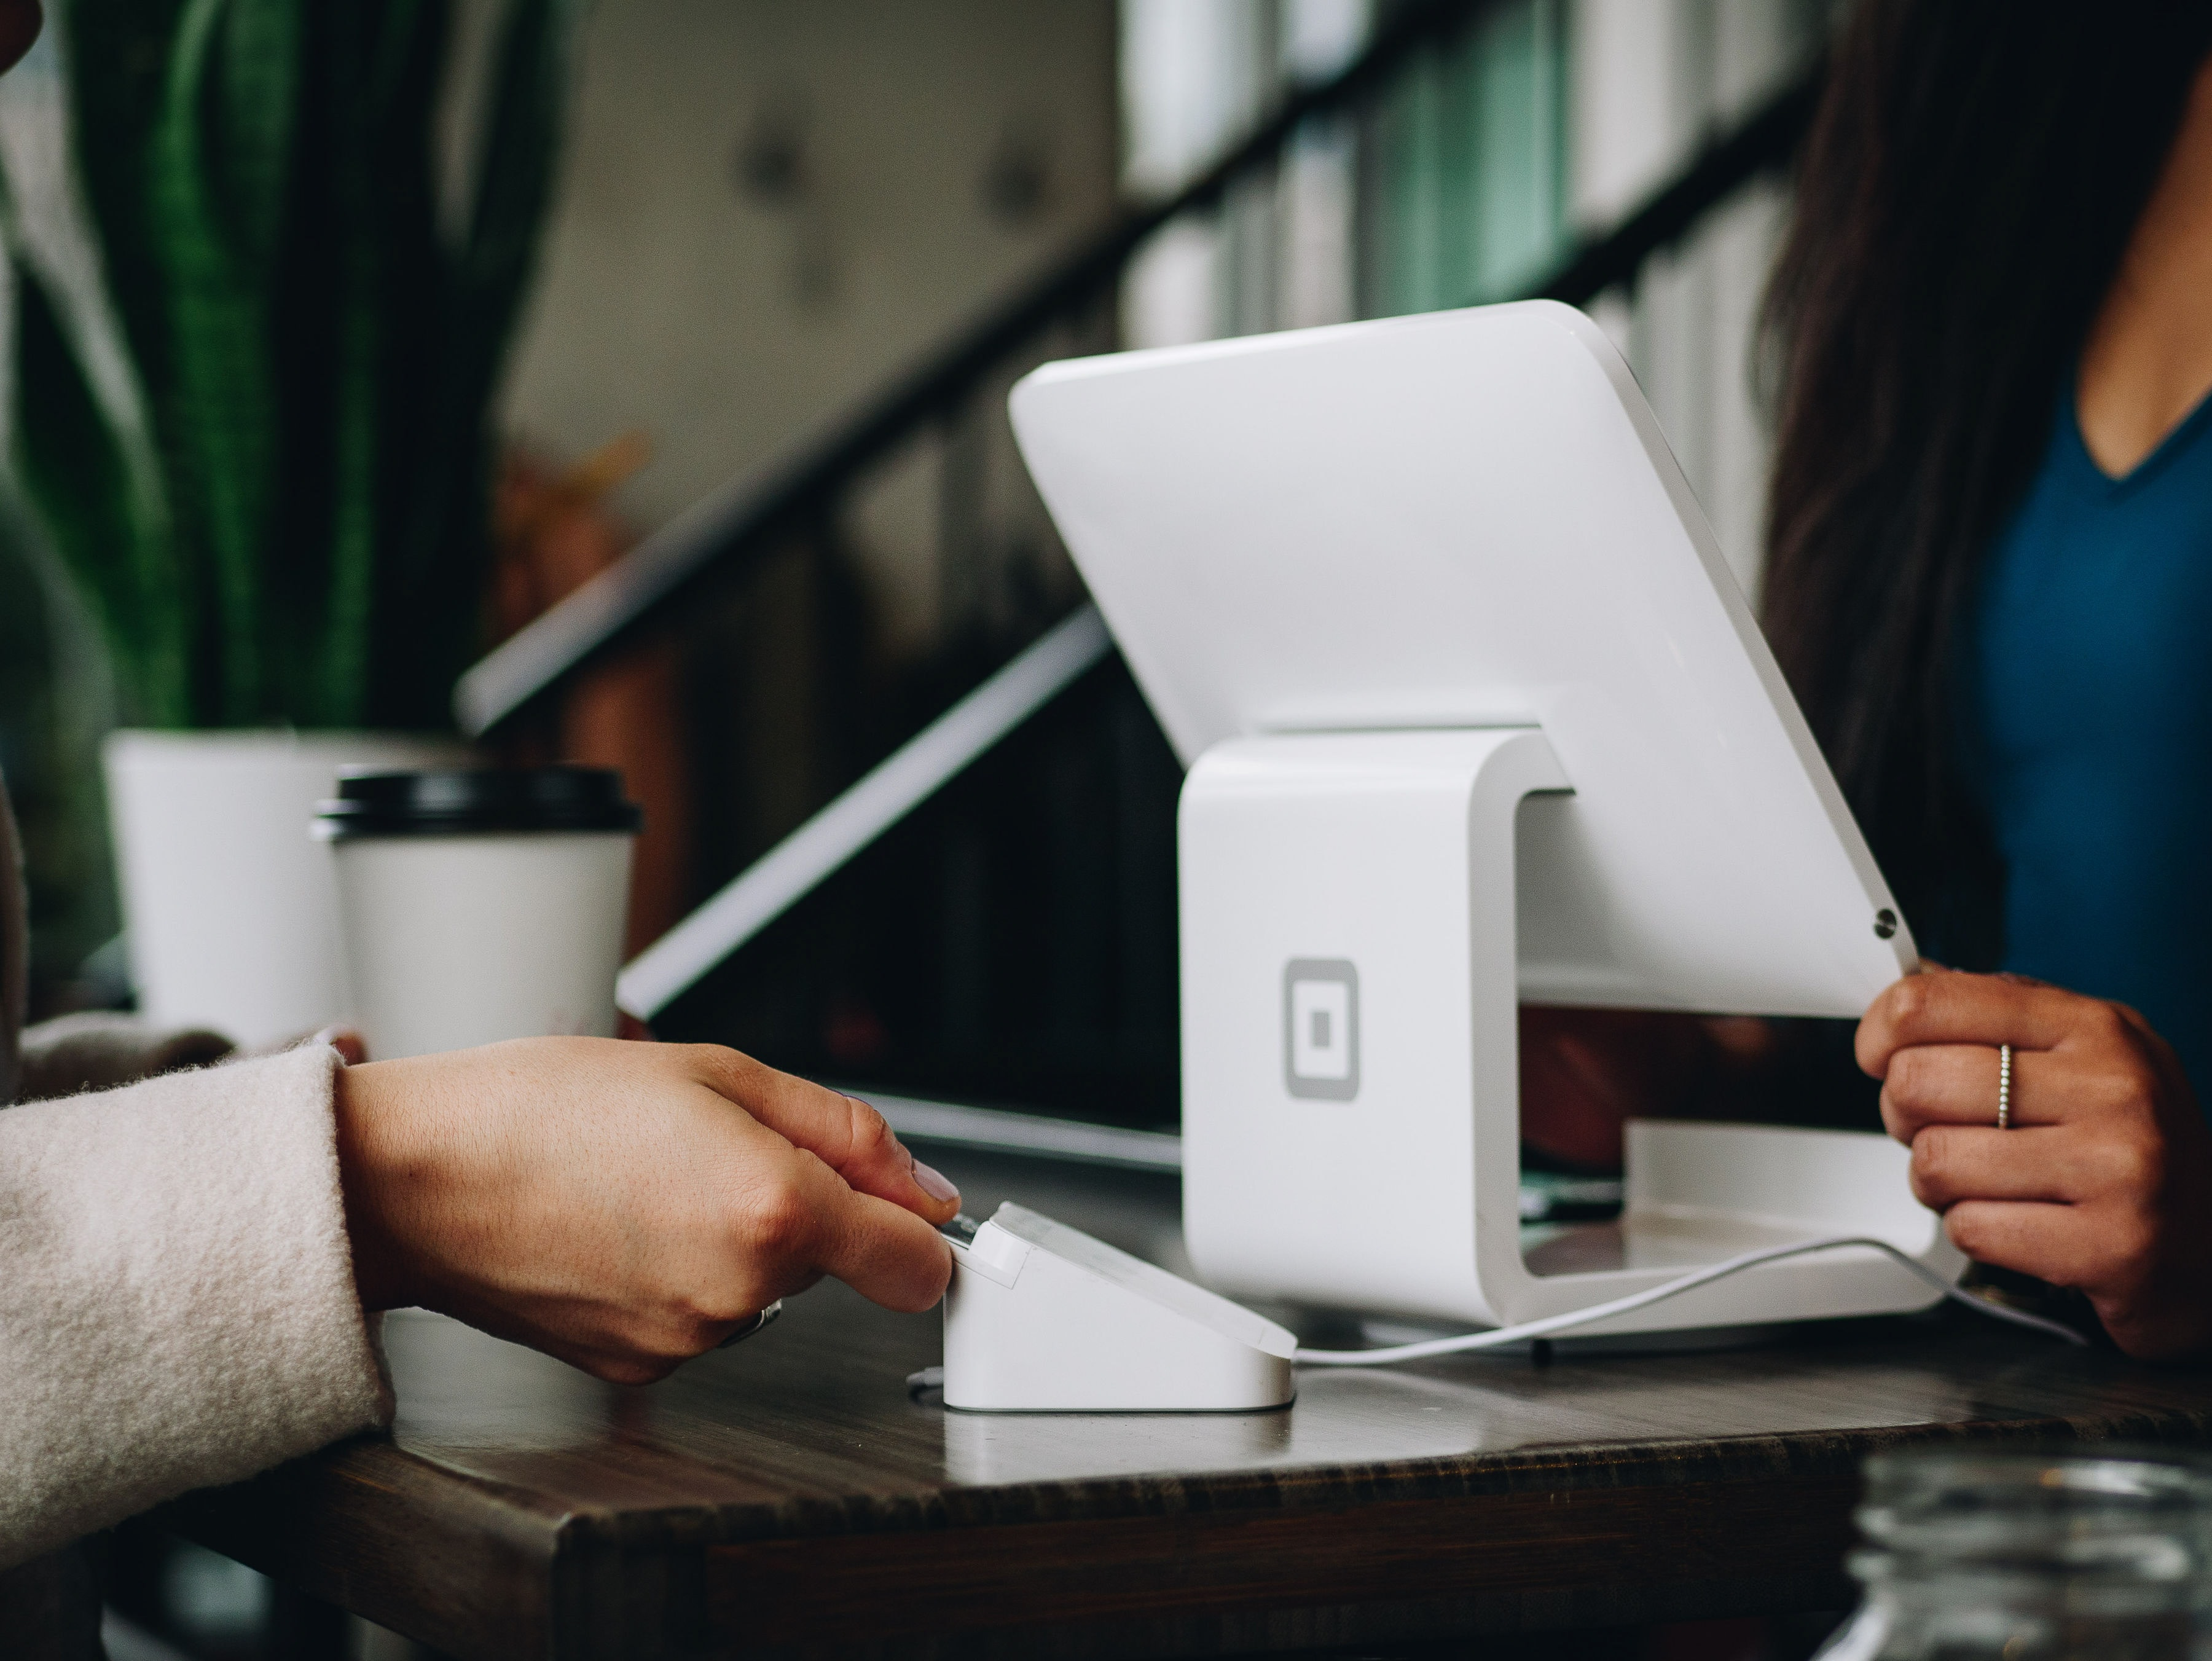 Square to buy Afterpay in $39 billion deal